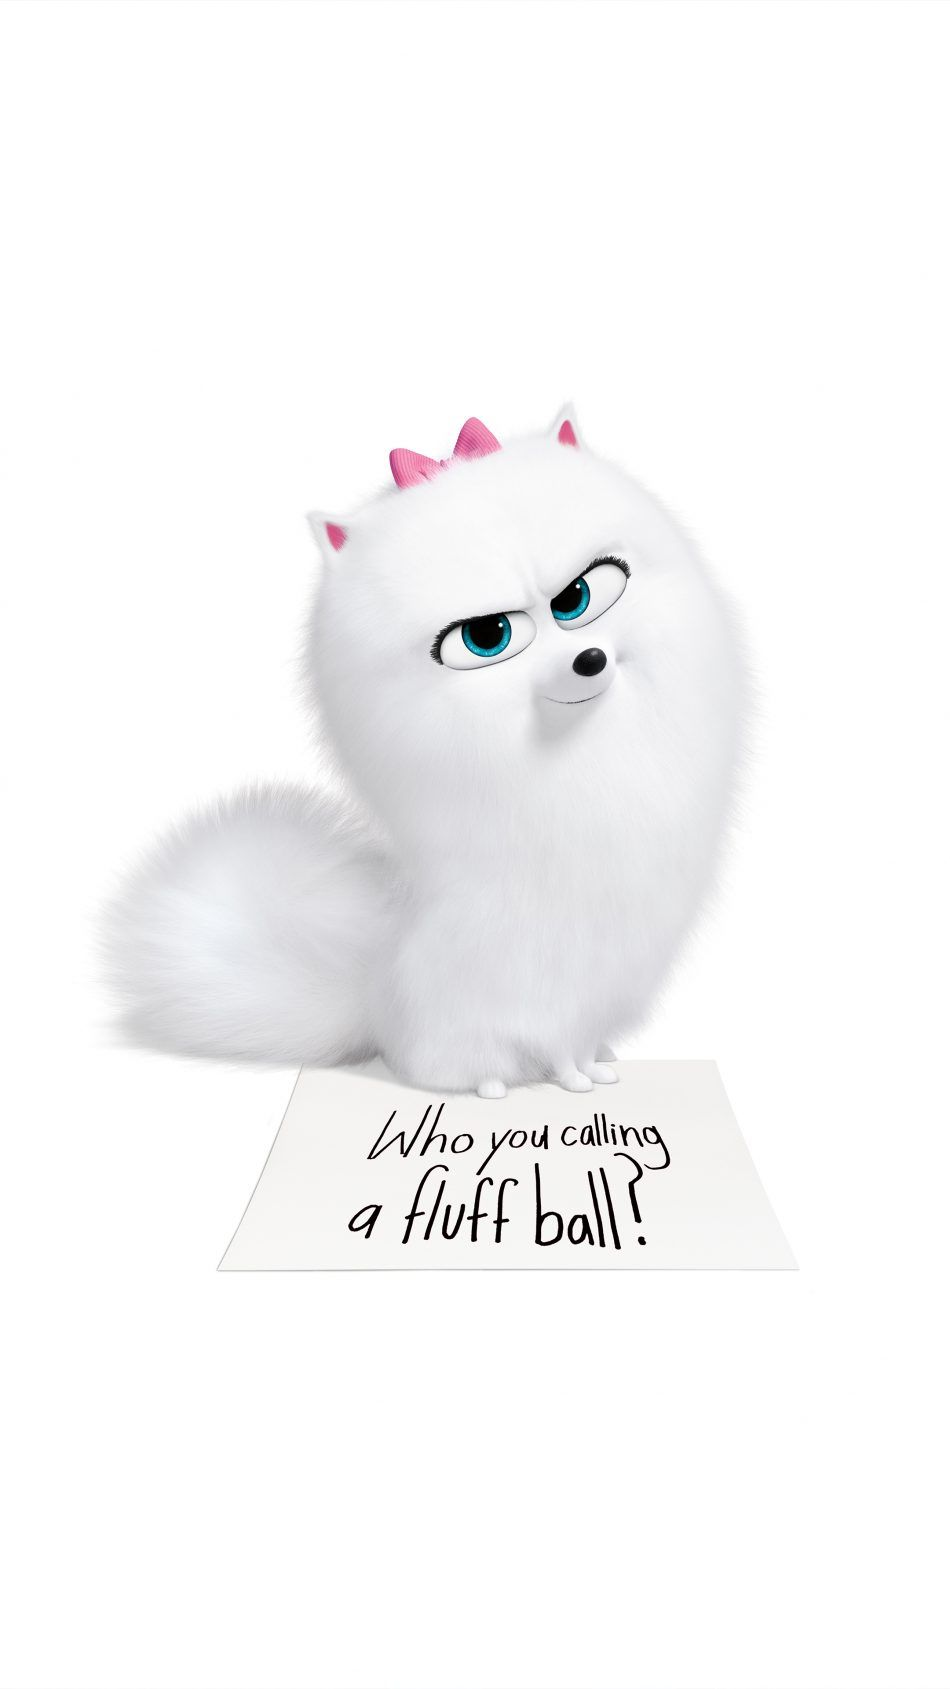 Gidget The Secret Life Of Pets 2 4k Ultra Hd Mobile Wallpaper Cute Cartoon Wallpapers Pets Movie Secret Life Of Pets